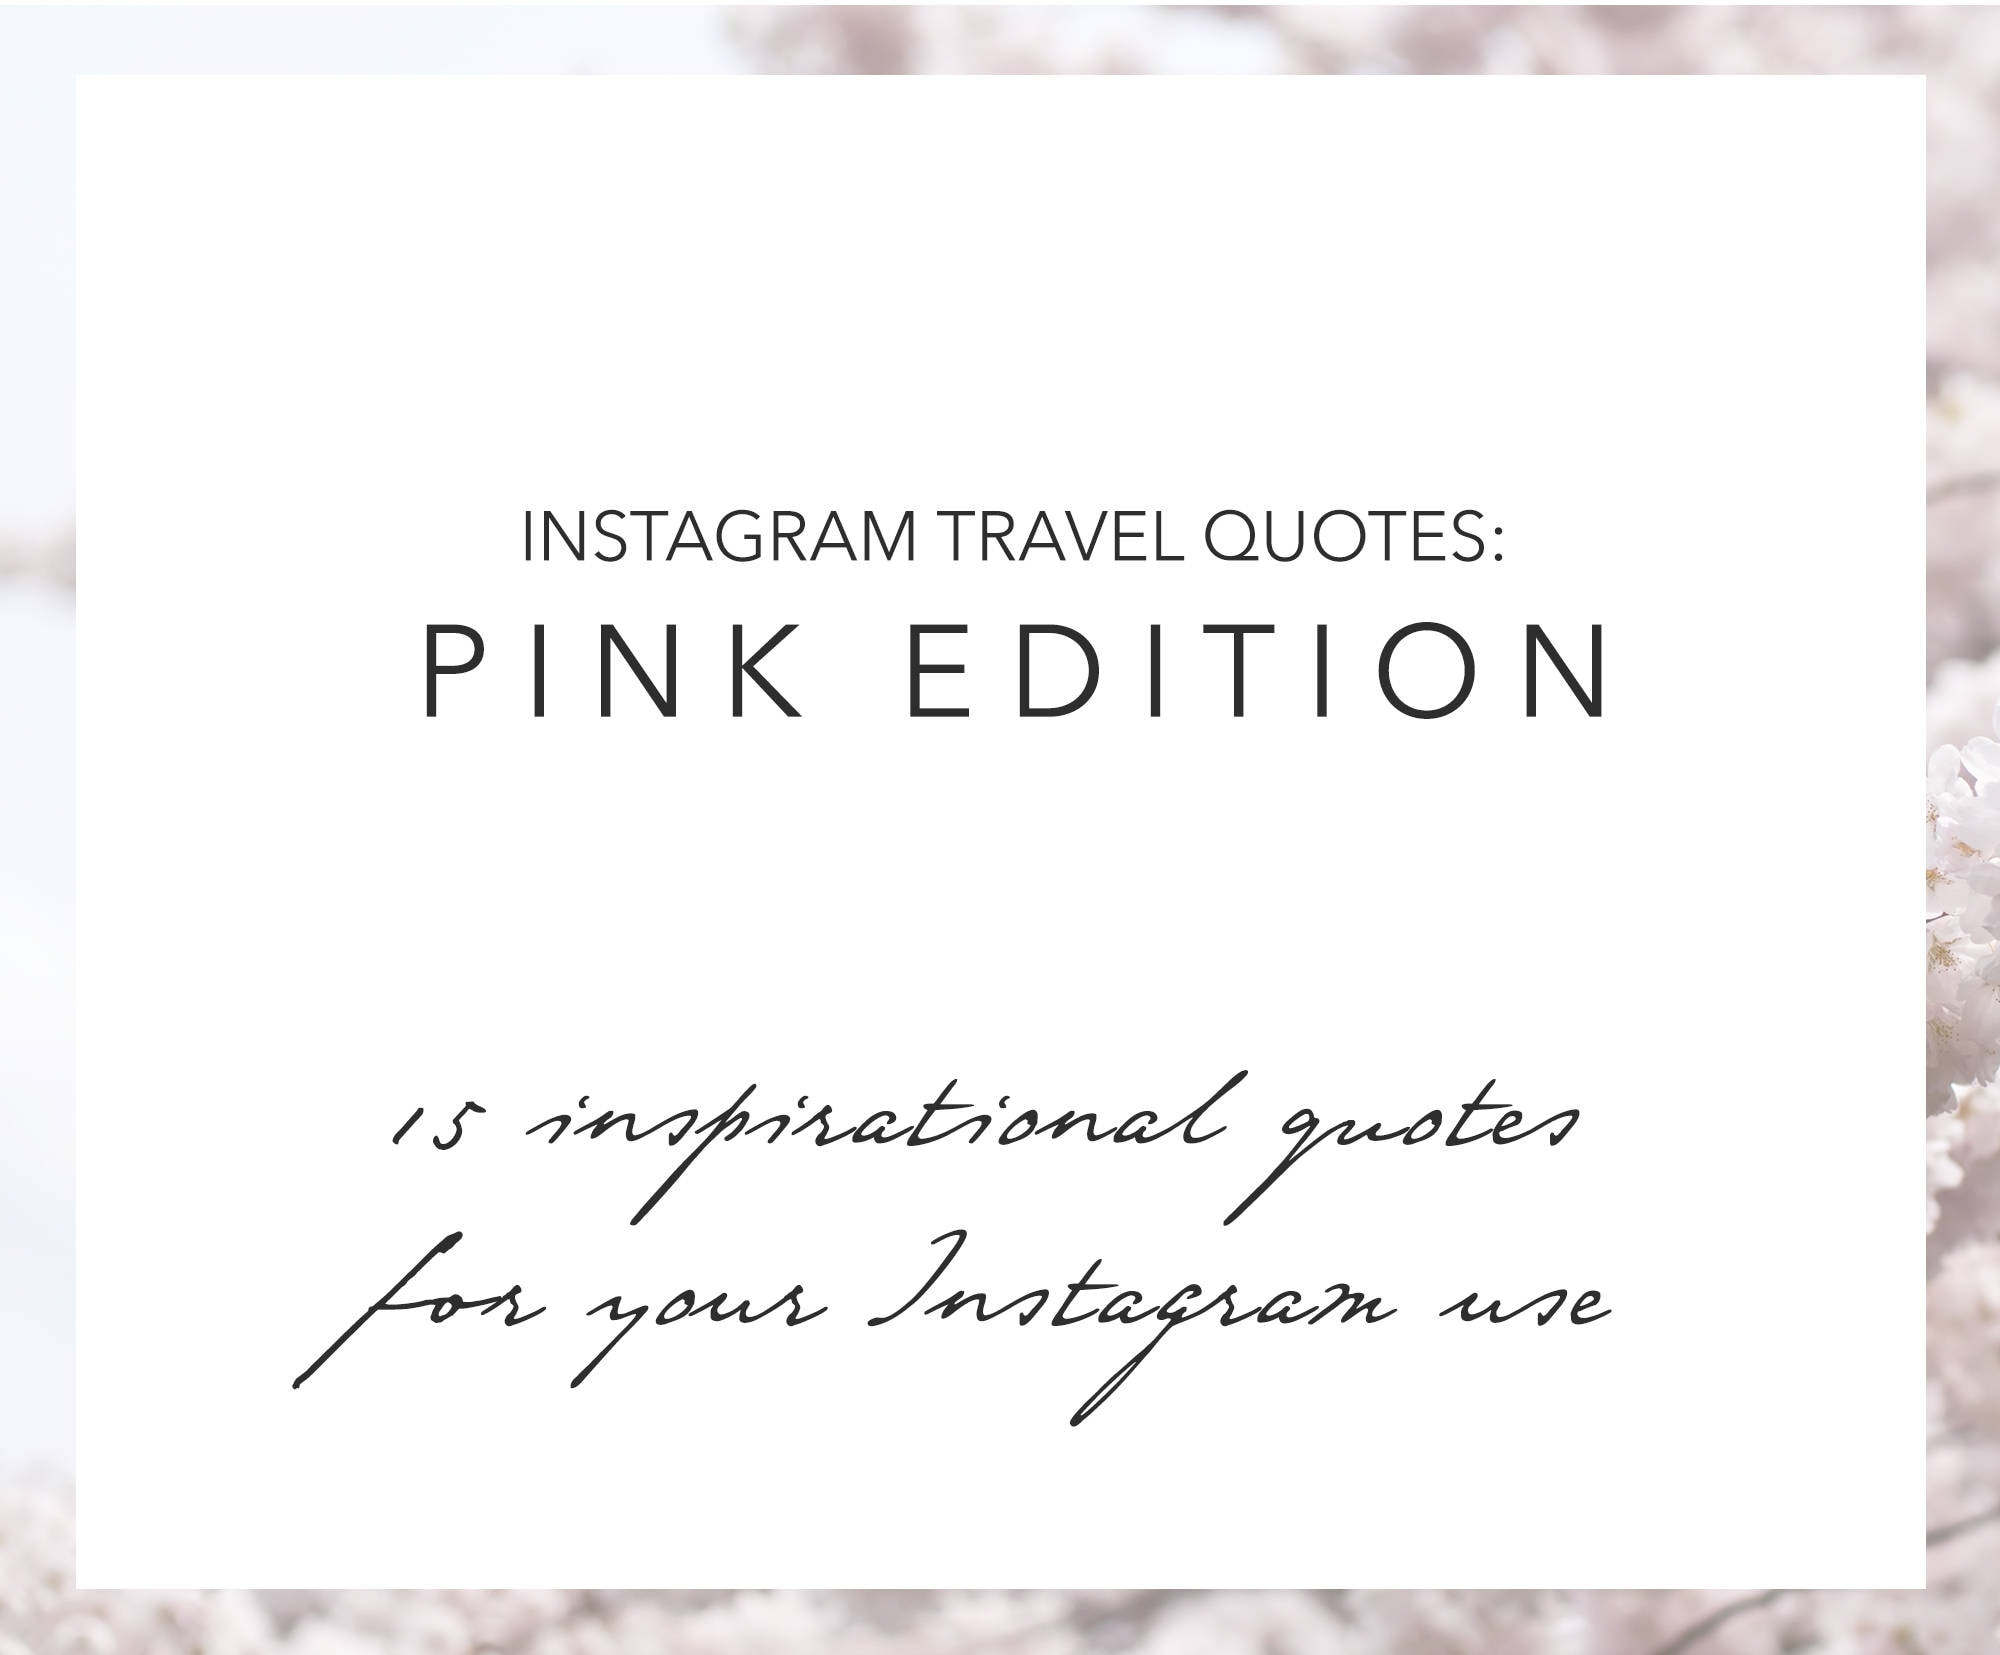 Quotes Instagram 15 Inspirational Travel Quotes Instagram Pink Images